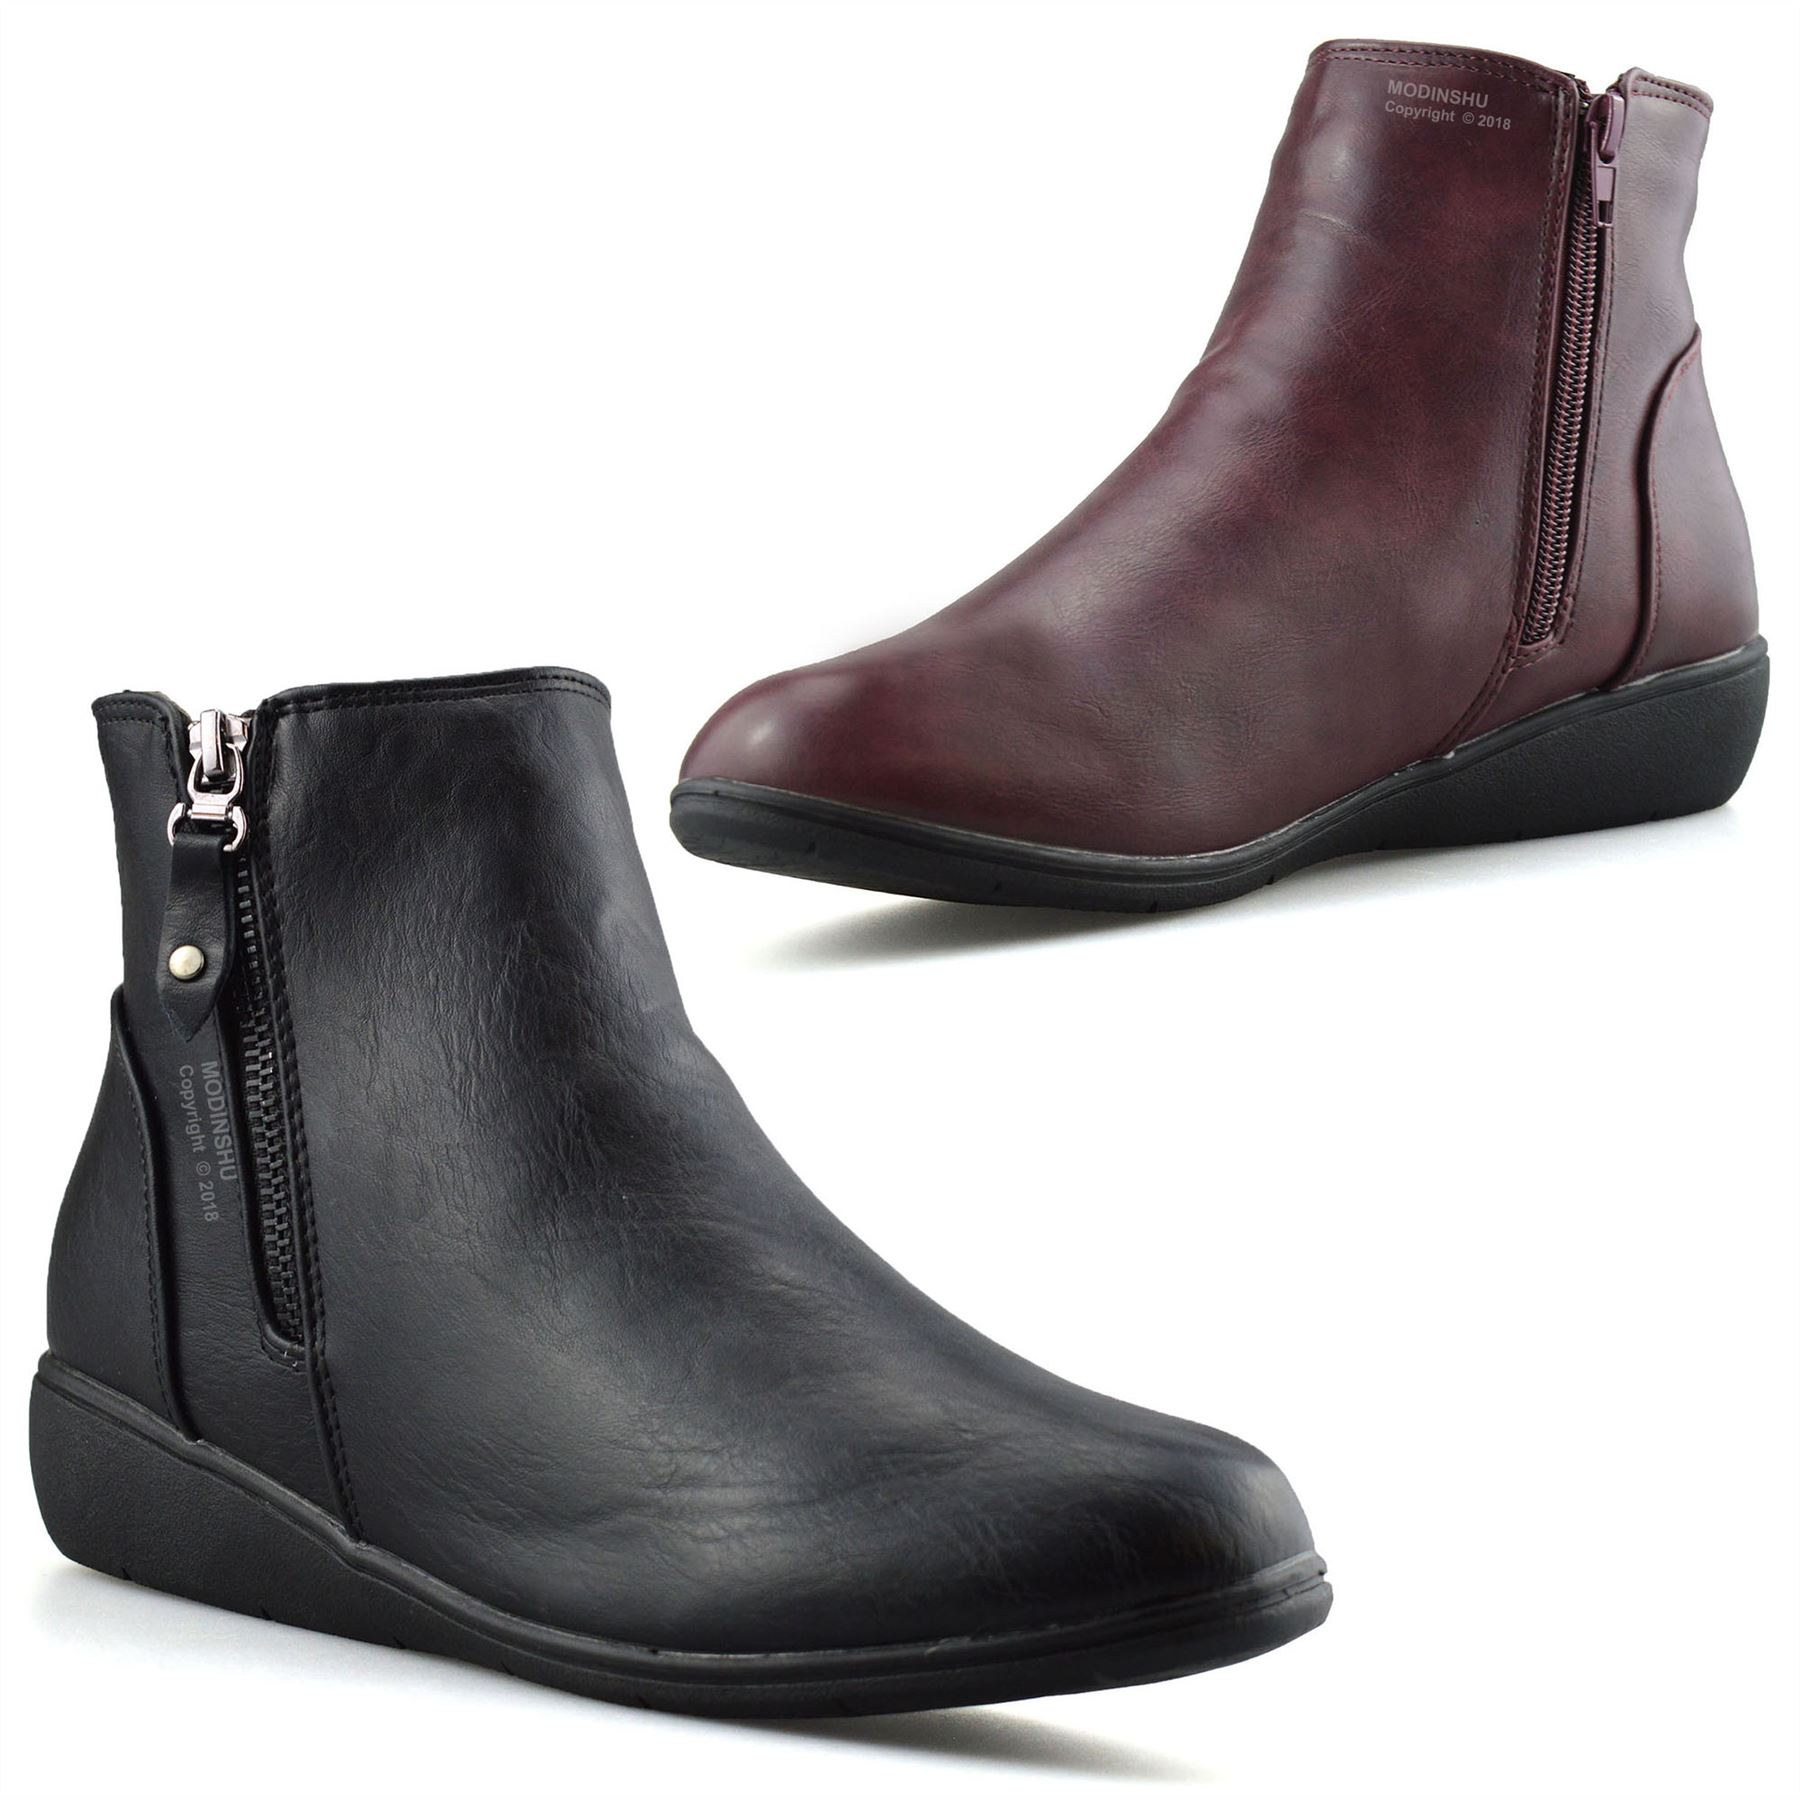 399f09efe05 Details about Ladies Womens Mid Wedge Heel Warm Fur Lined Zip Up Winter Ankle  Boots Shoes Size